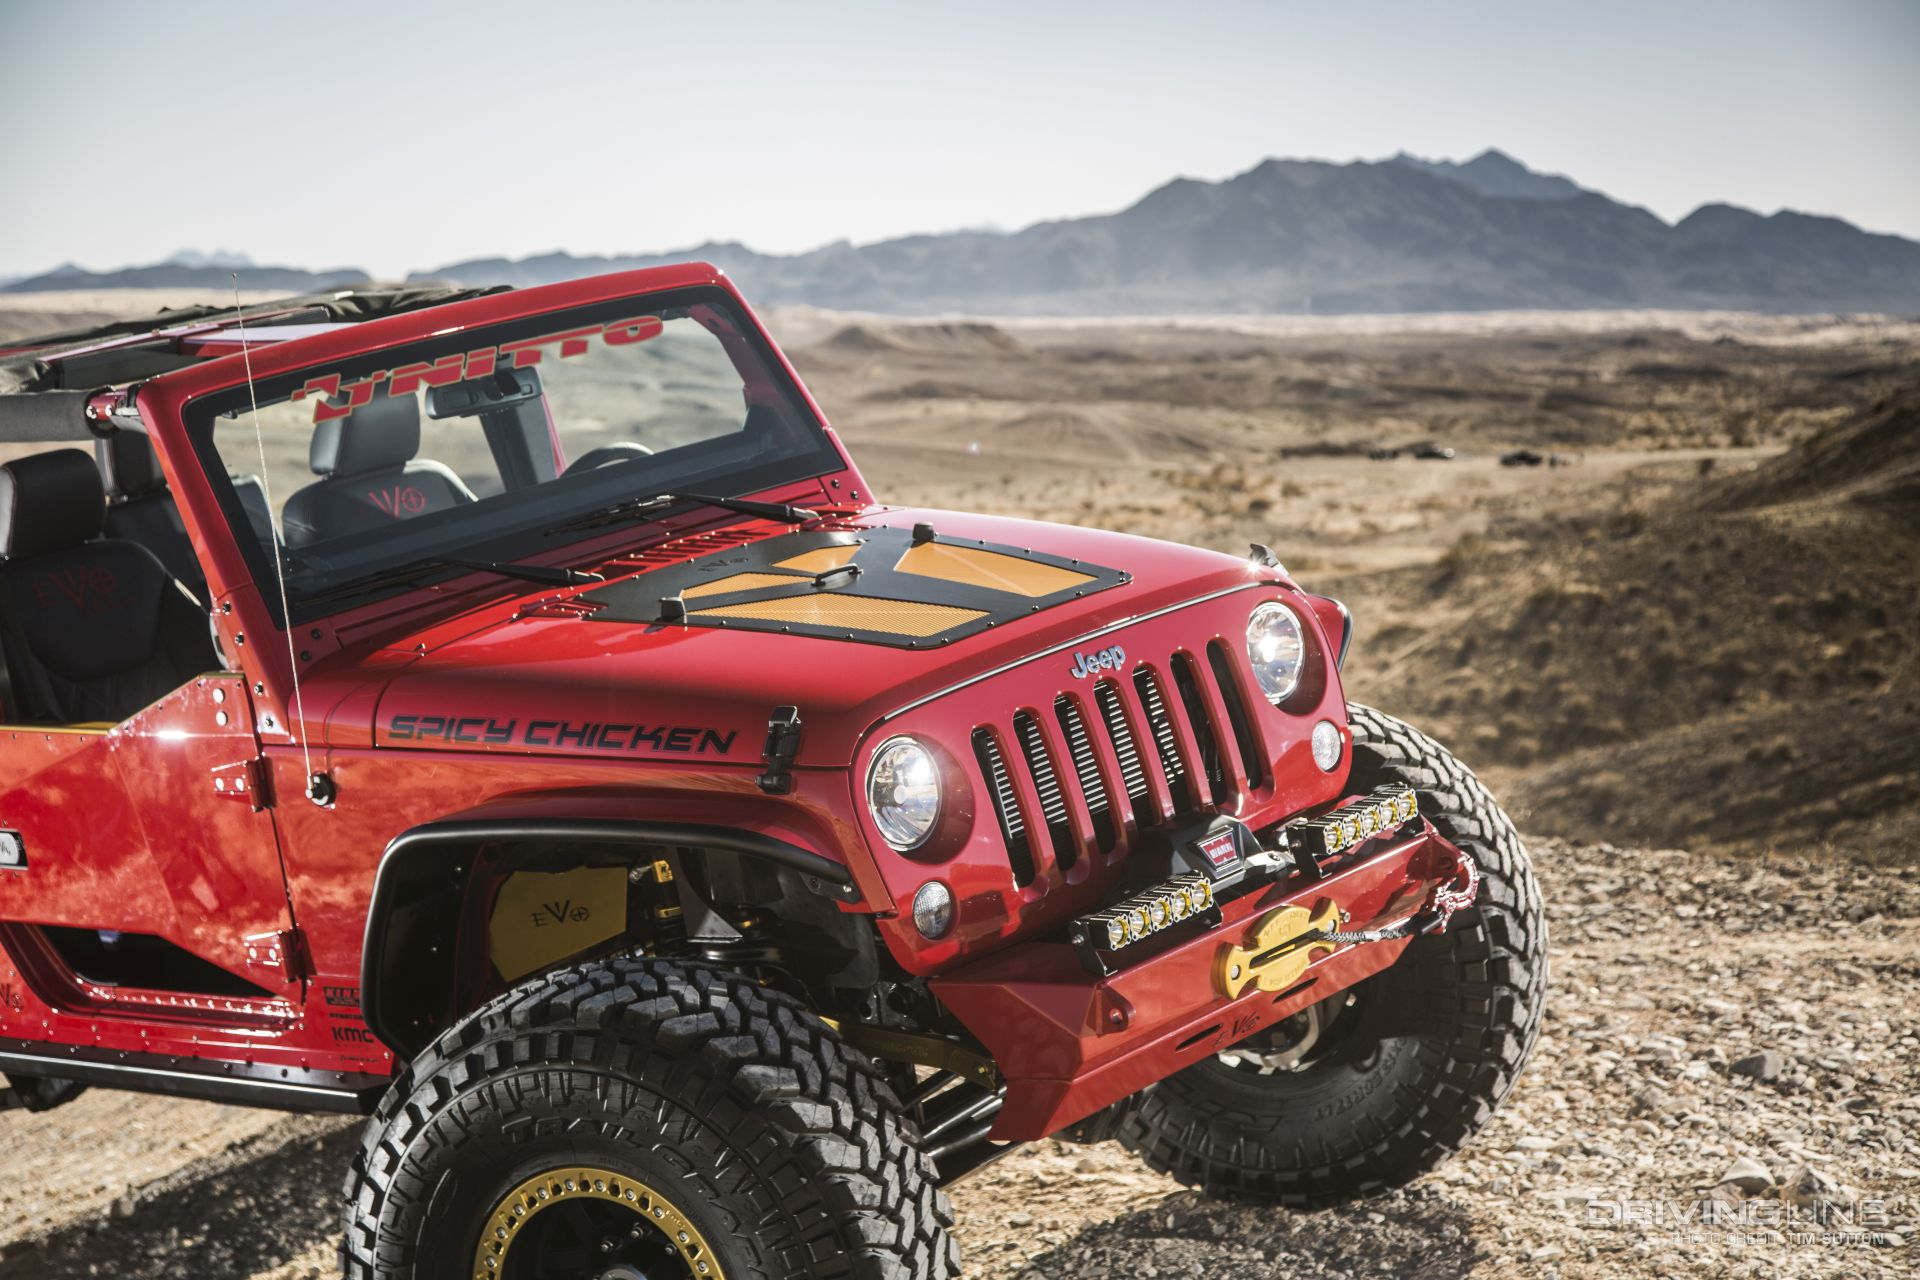 2017 Jeep Wrangler Unlimited Sport >> Spicy Chicken: An EVO-Built 2017 Jeep Wrangler Unlimited ...